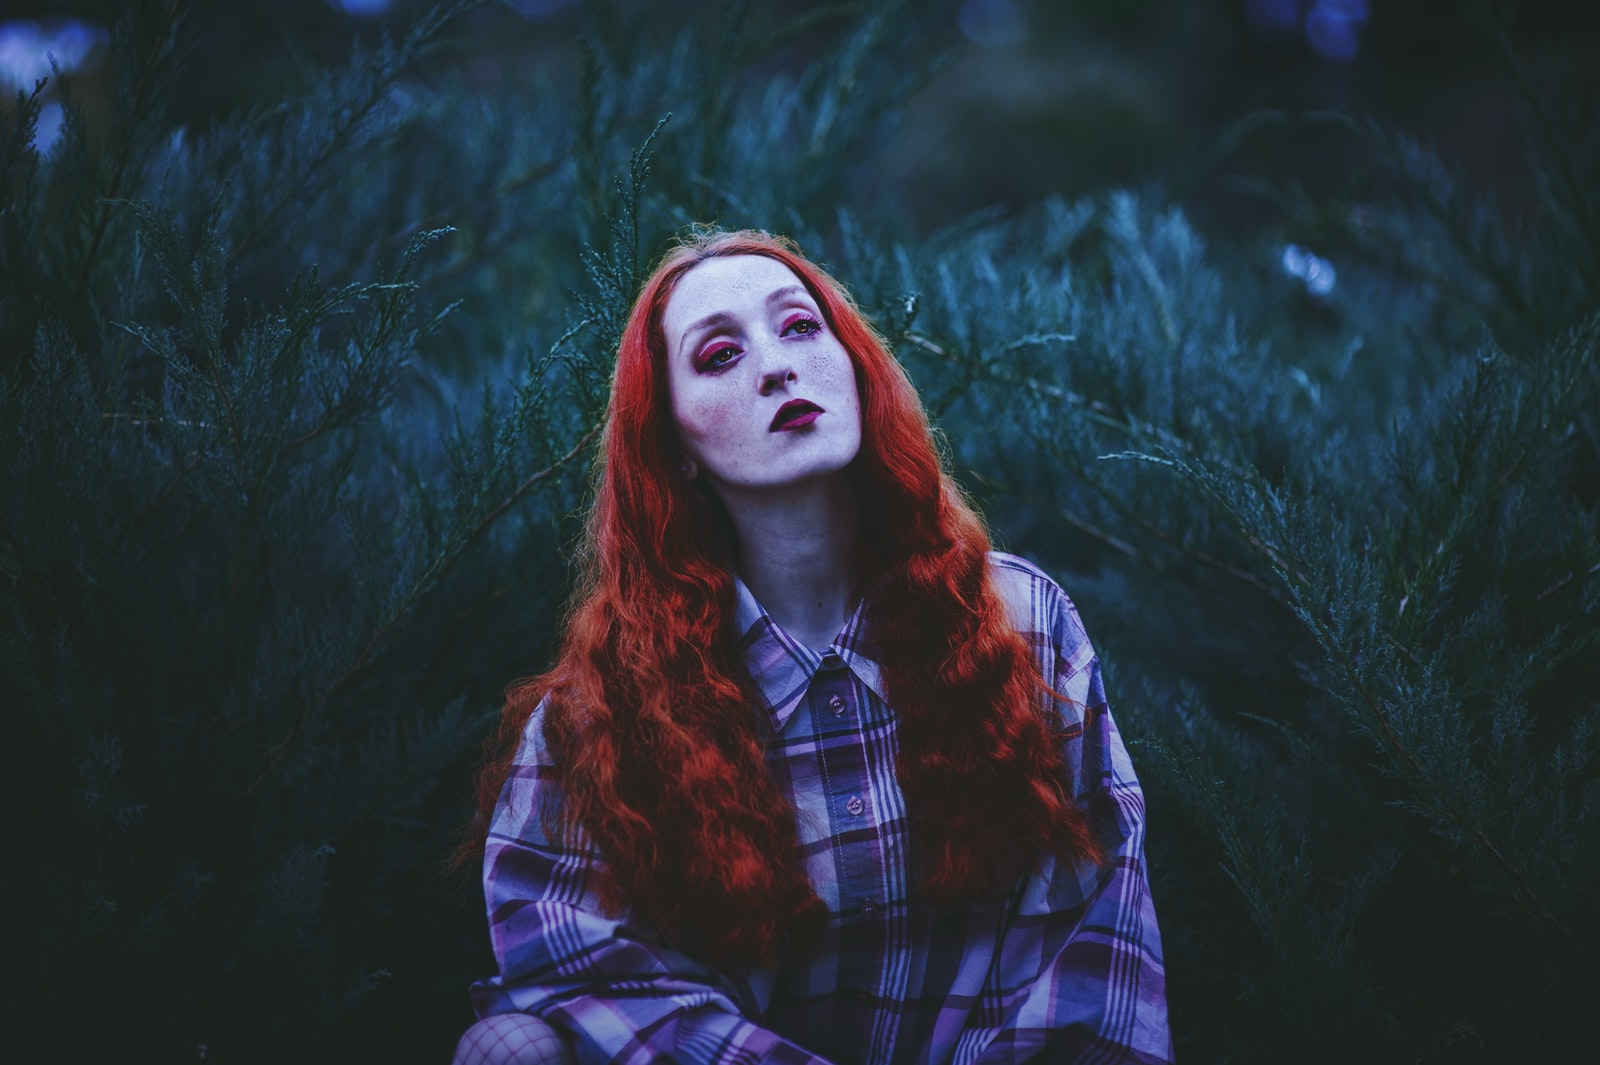 """Nikon D700 sample photo. """"Photography of red-haired woman"""" photography"""